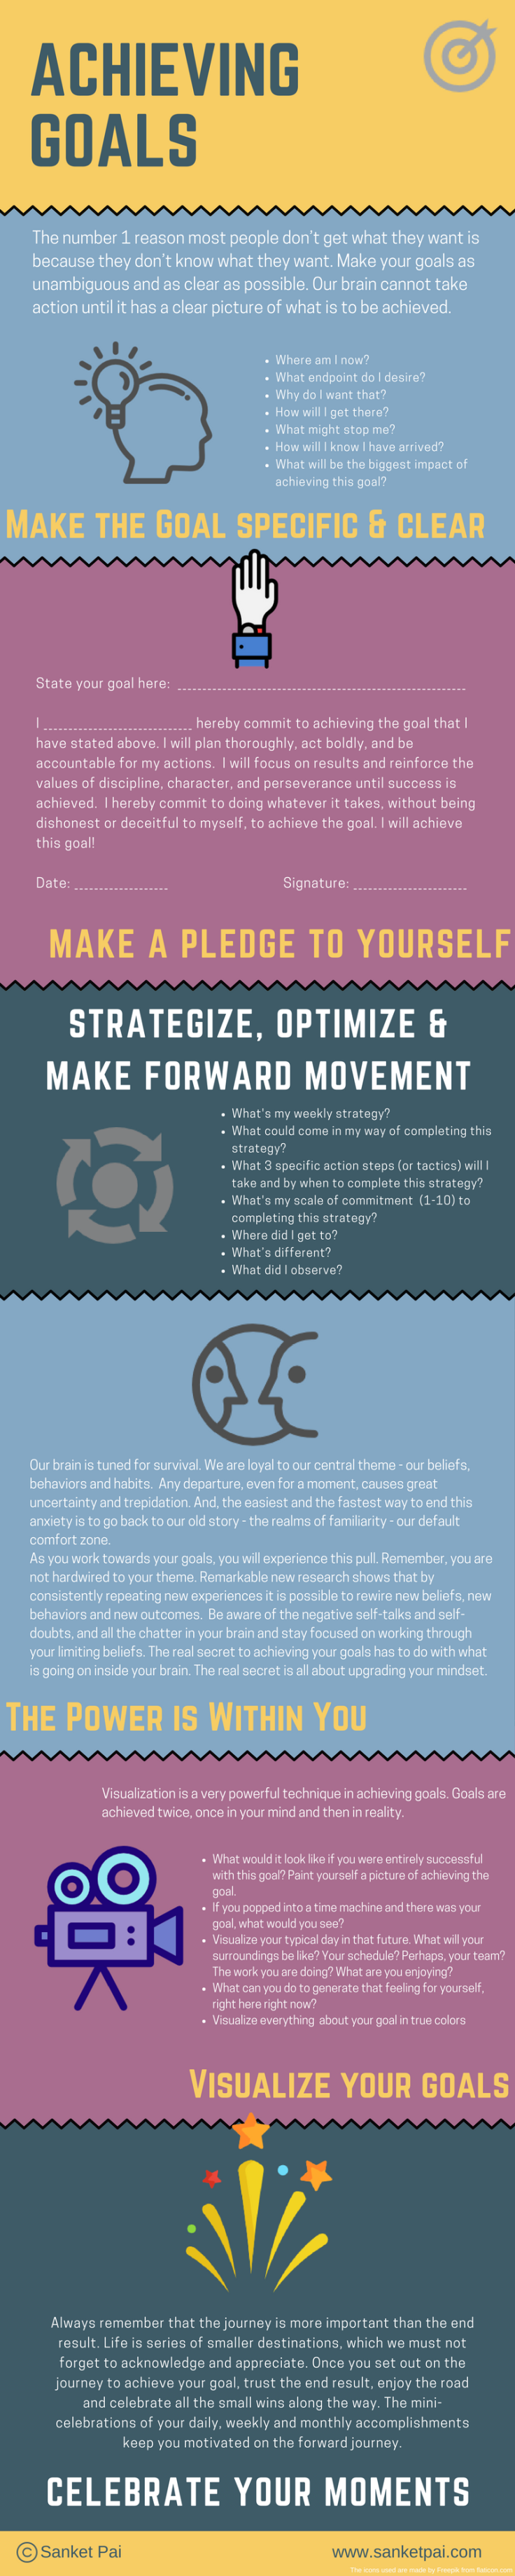 Achieving Your Goals (Infographic) - By Sanket Pai